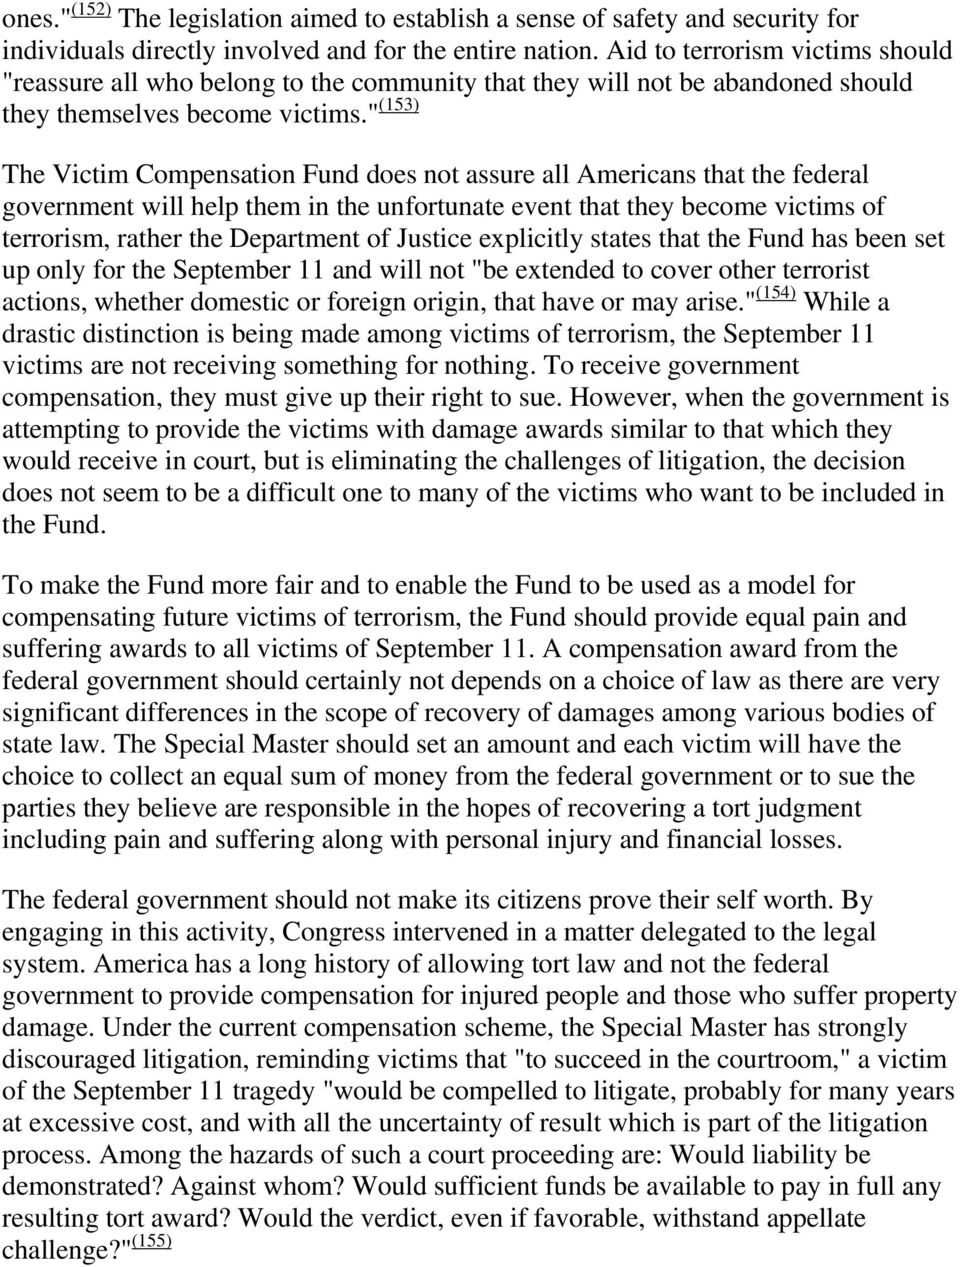 """ (153) The Victim Compensation Fund does not assure all Americans that the federal government will help them in the unfortunate event that they become victims of terrorism, rather the Department of"